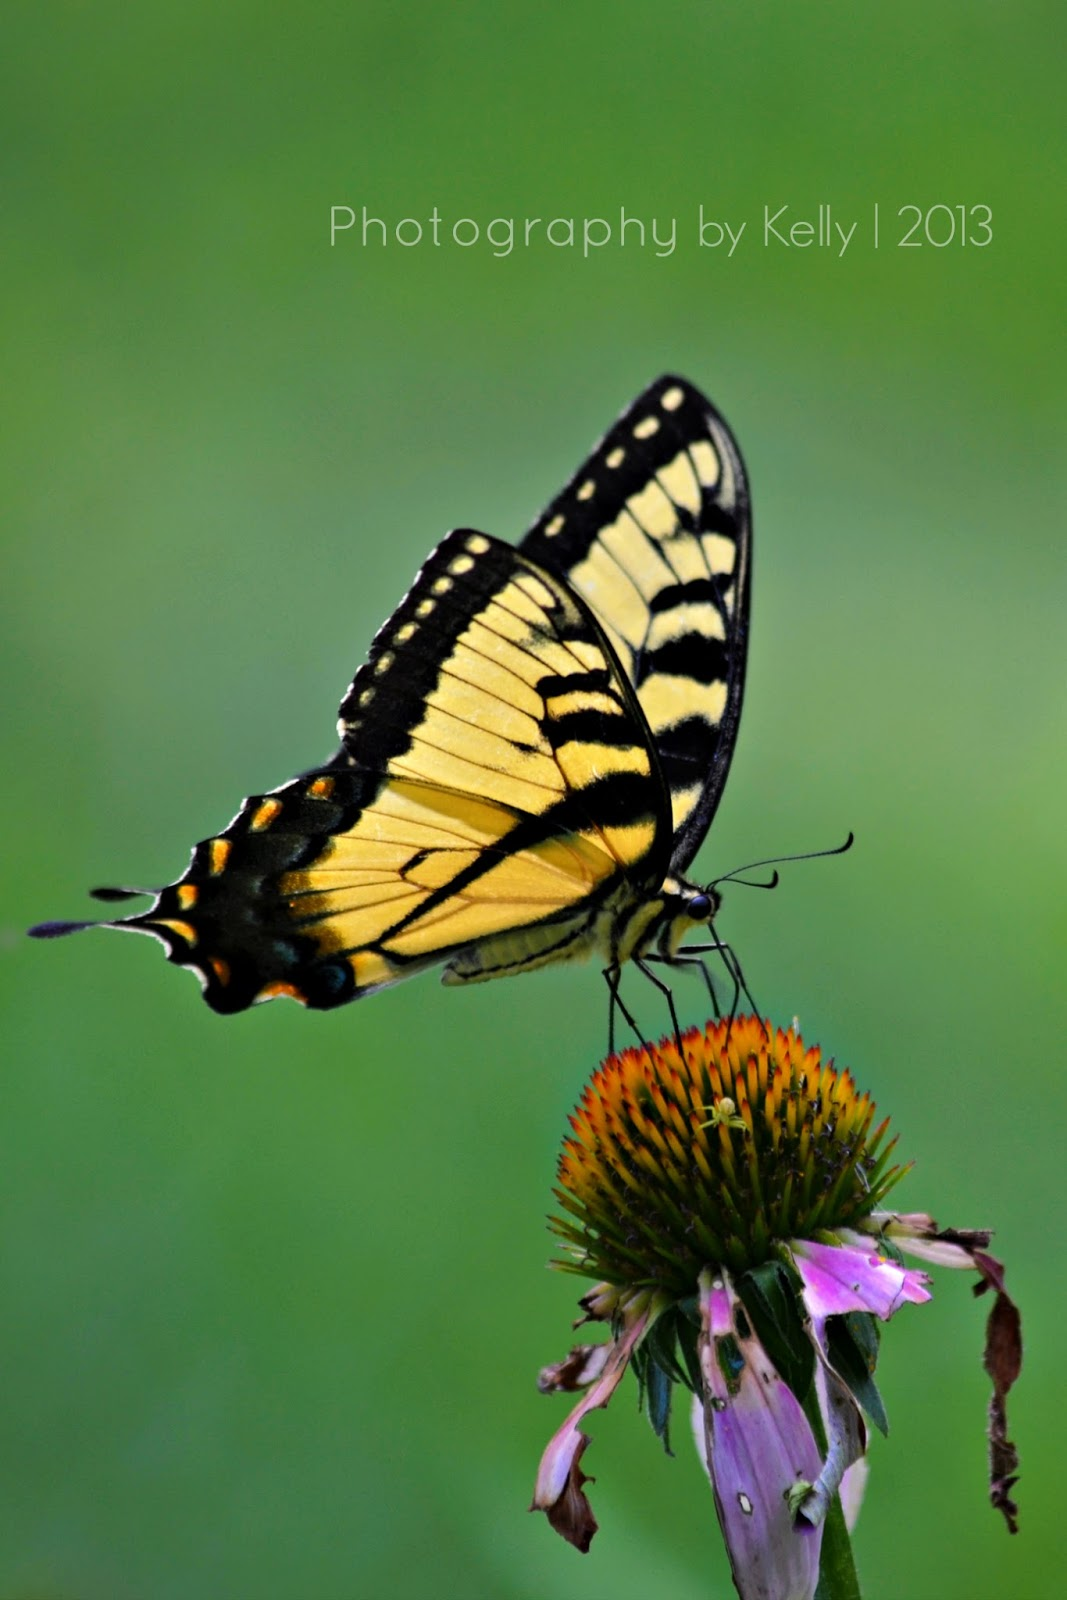 Butterfly flying away - photo#34